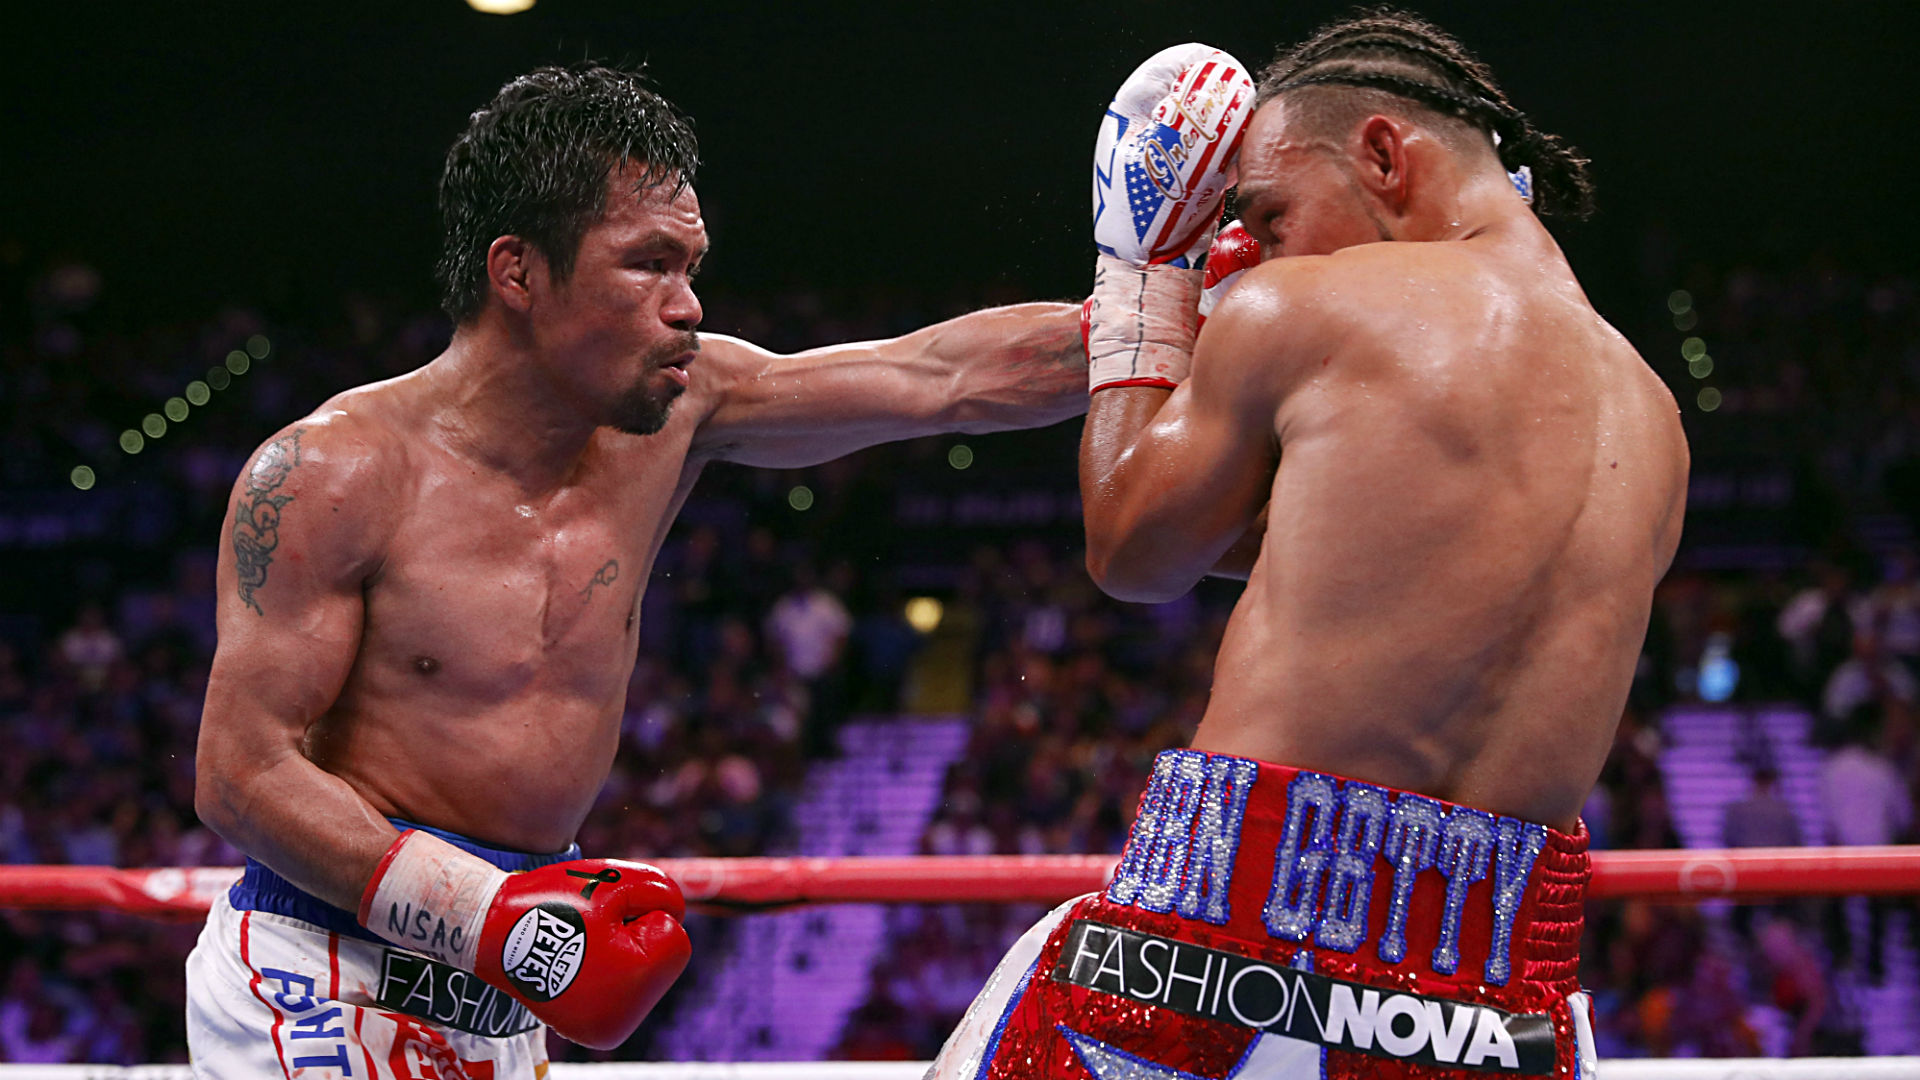 Pacquiao vs. Thurman results: Twitter reacts to Manny Pacquiao's stellar  performance vs. Keith Thurman   Sporting News